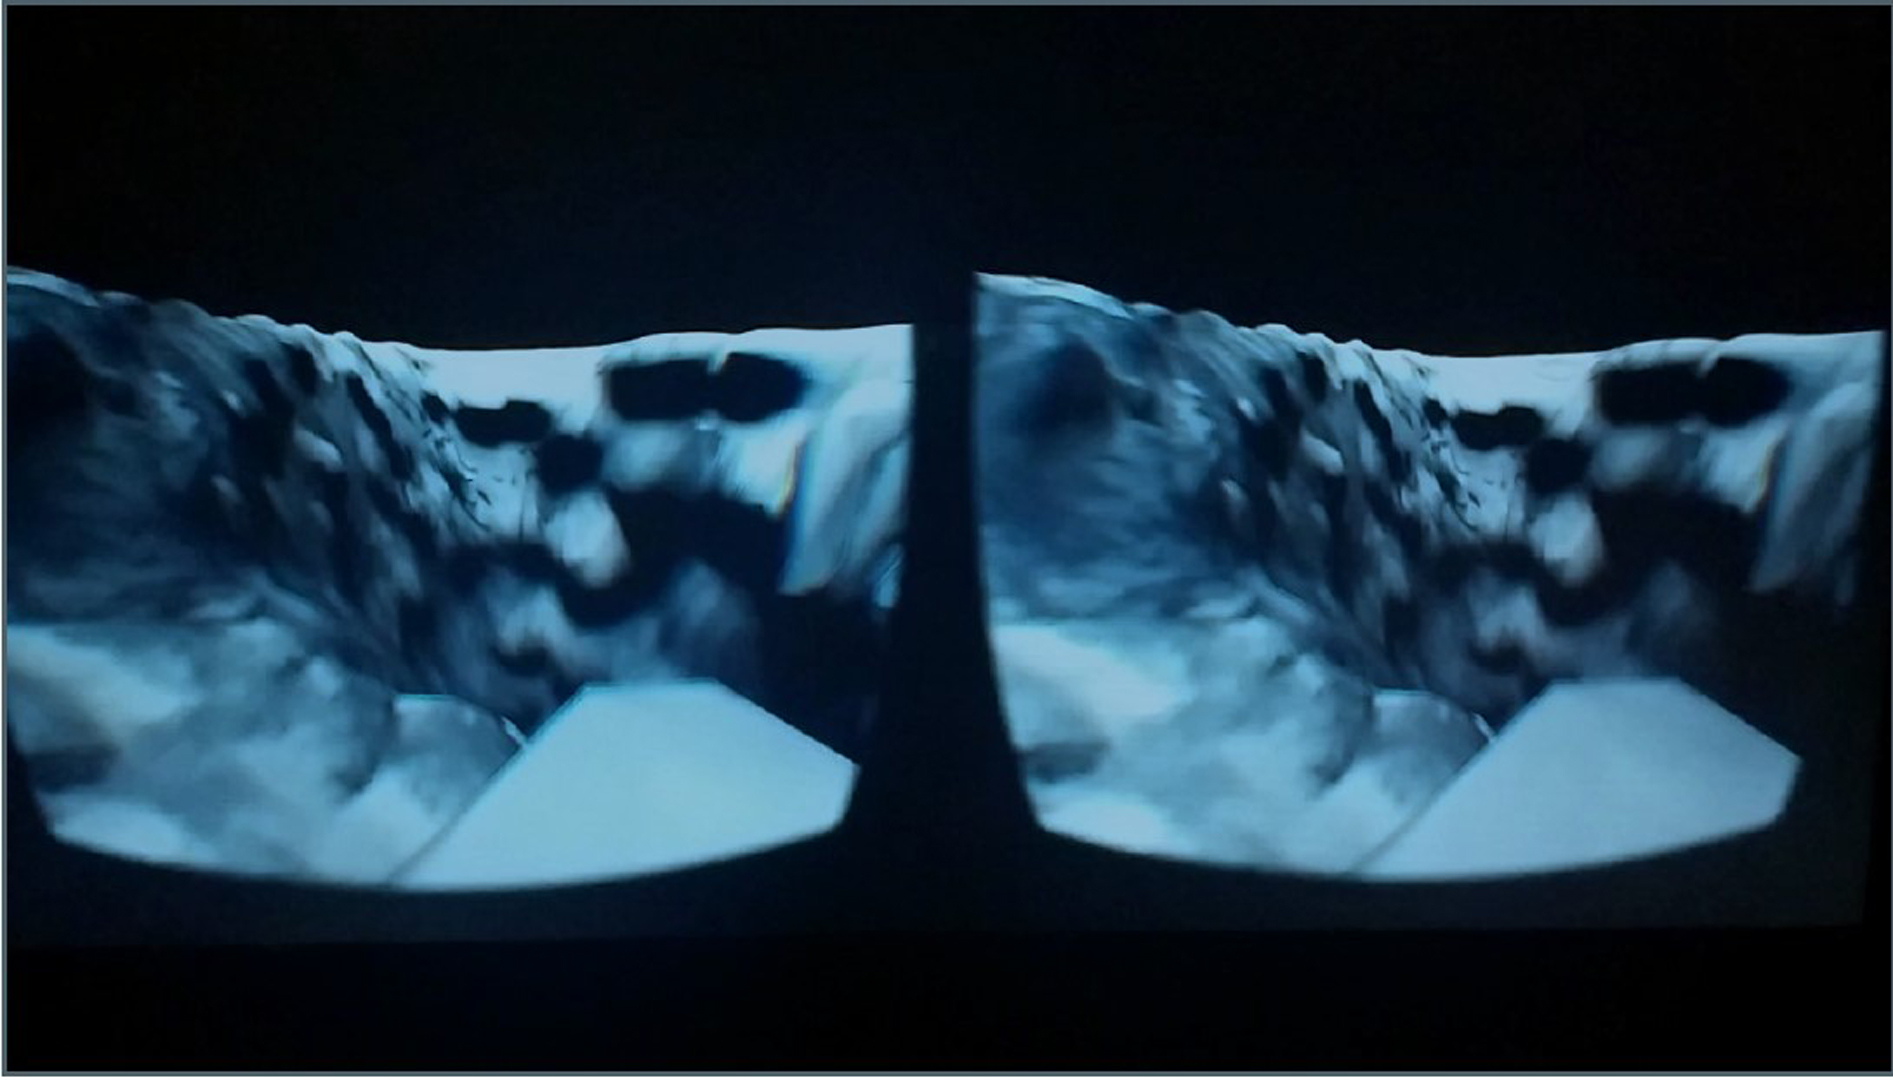 ©ISEA2016: 22nd International Symposium on Electronic Art, Mert Akbal, Reproduction of Dream Experience in Virtual Reality